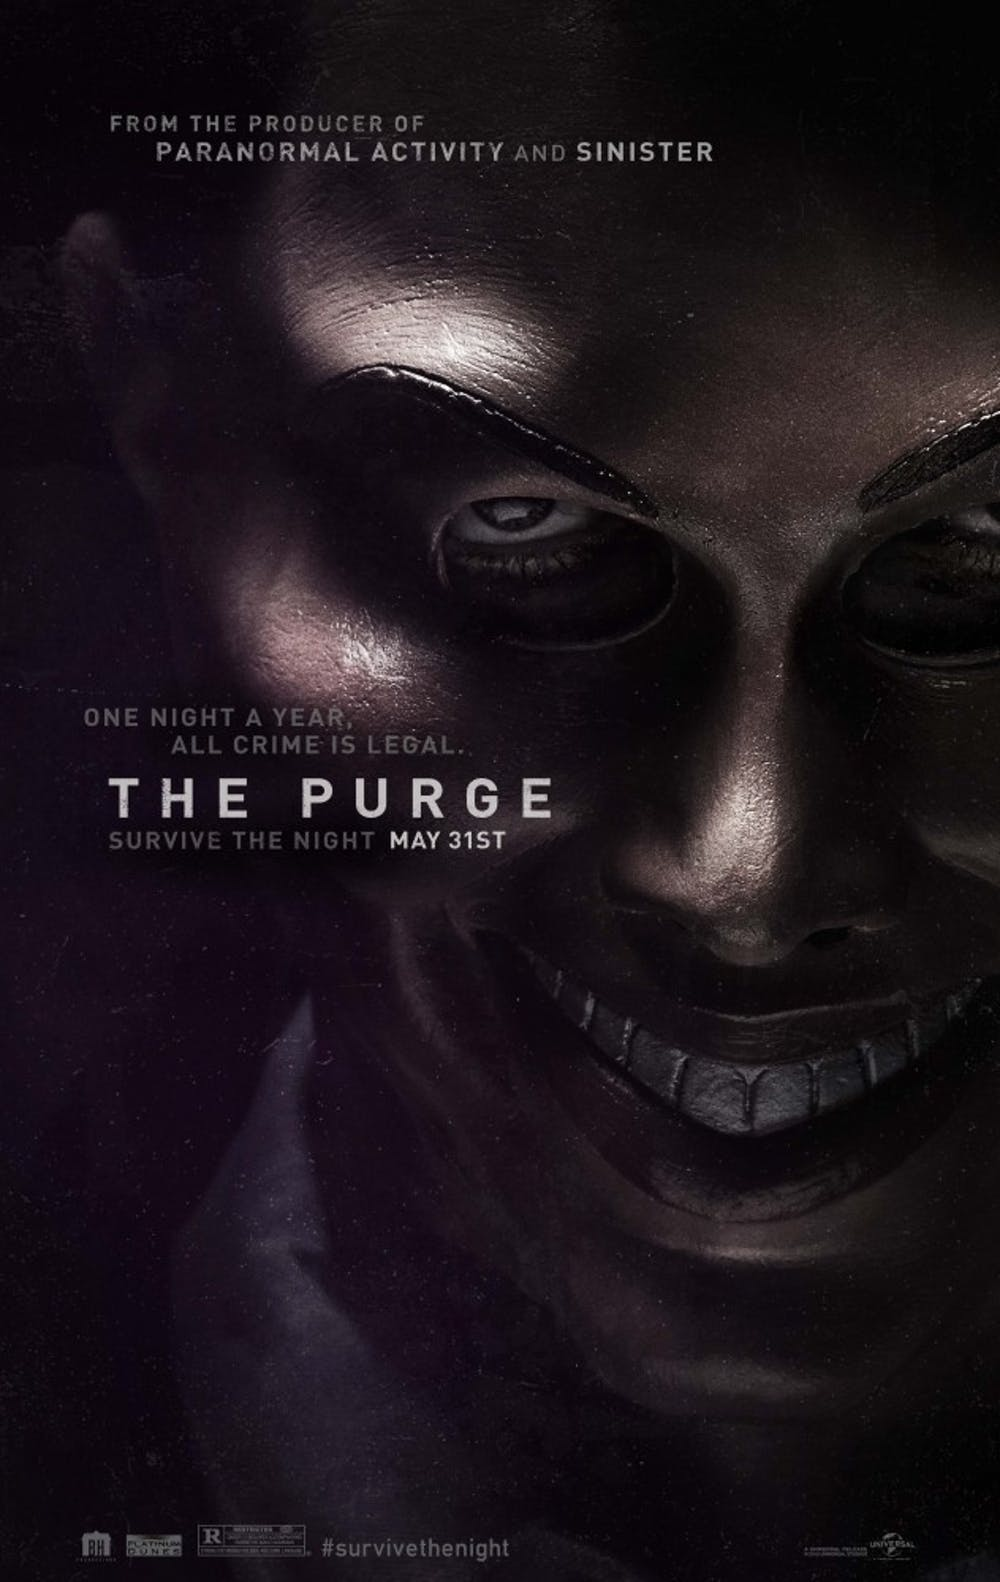 The Purge has a great premise, but misses the mark